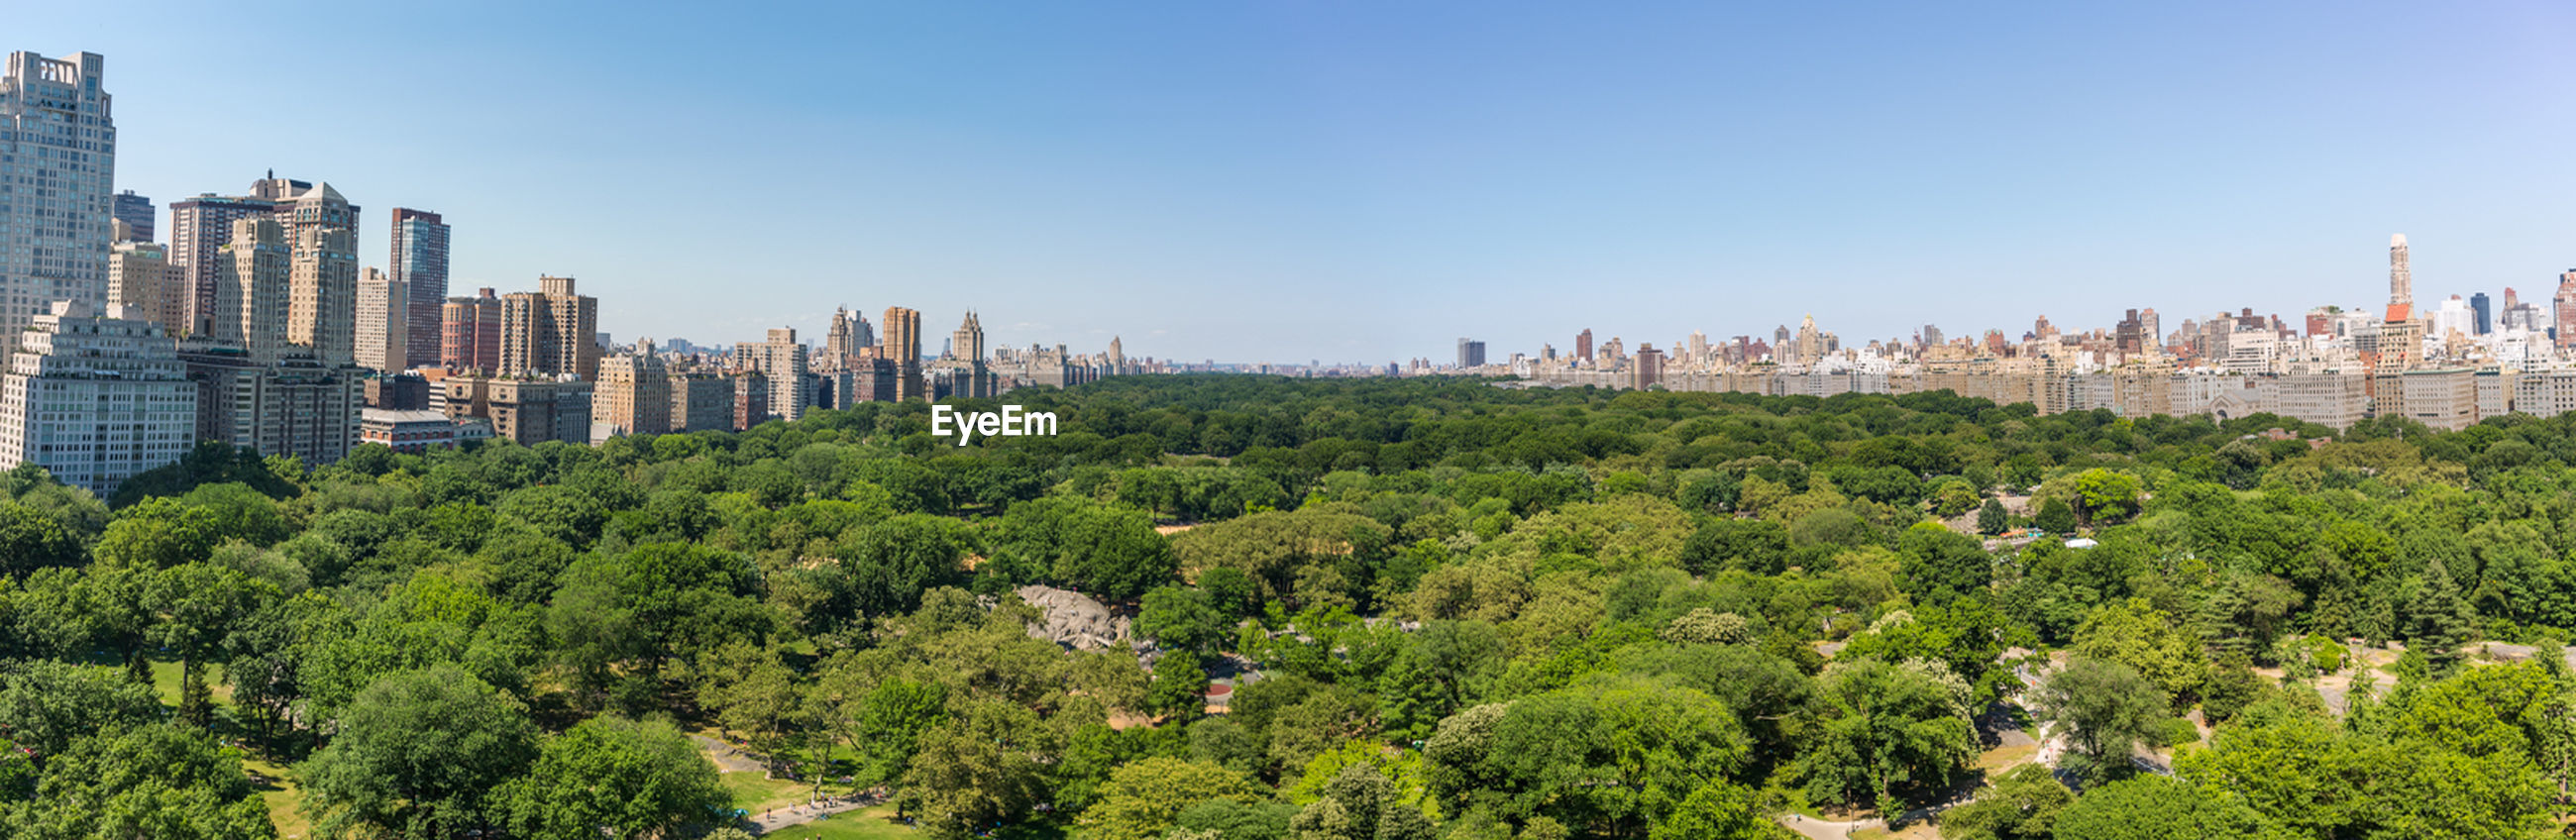 tree, city, architecture, building exterior, built structure, growth, panoramic, travel destinations, outdoors, no people, skyscraper, sky, nature, modern, day, urban skyline, cityscape